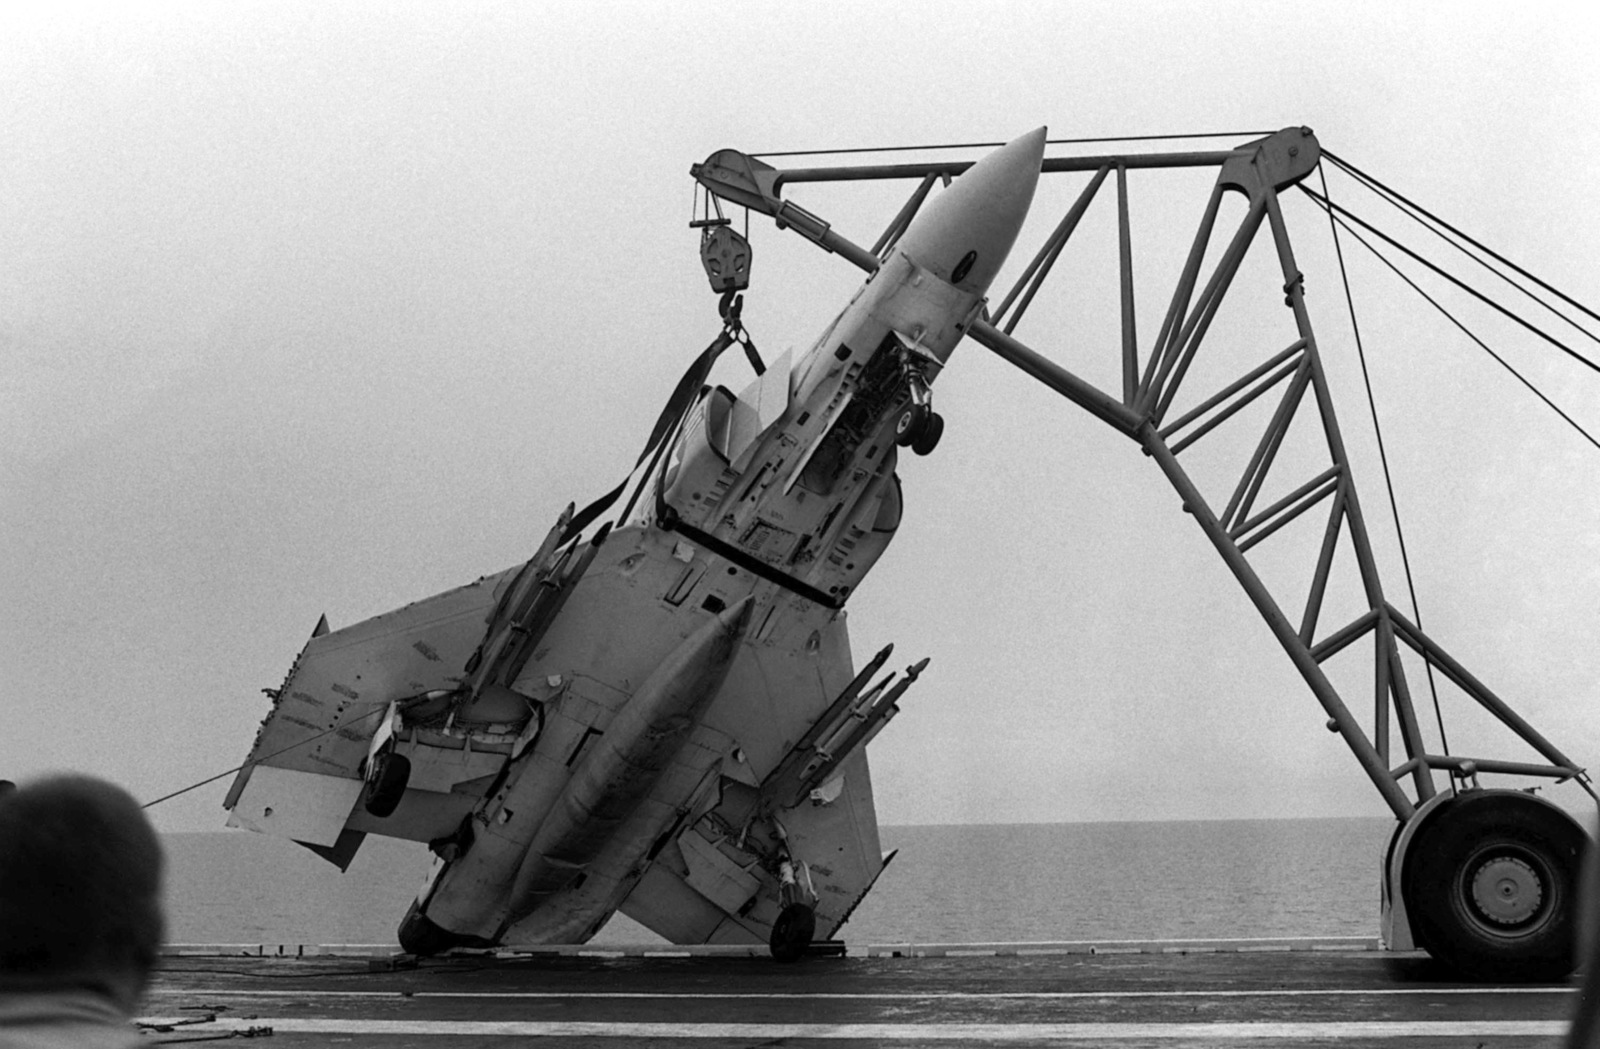 A crane is used to lift an F-4 Phantom II aircraft away from the port side deck edge of the aircraft carrier USS MIDWAY (CV 41). The F-4 was damaged when the MIDWAY collided with the Panamanian freighter CACTUS